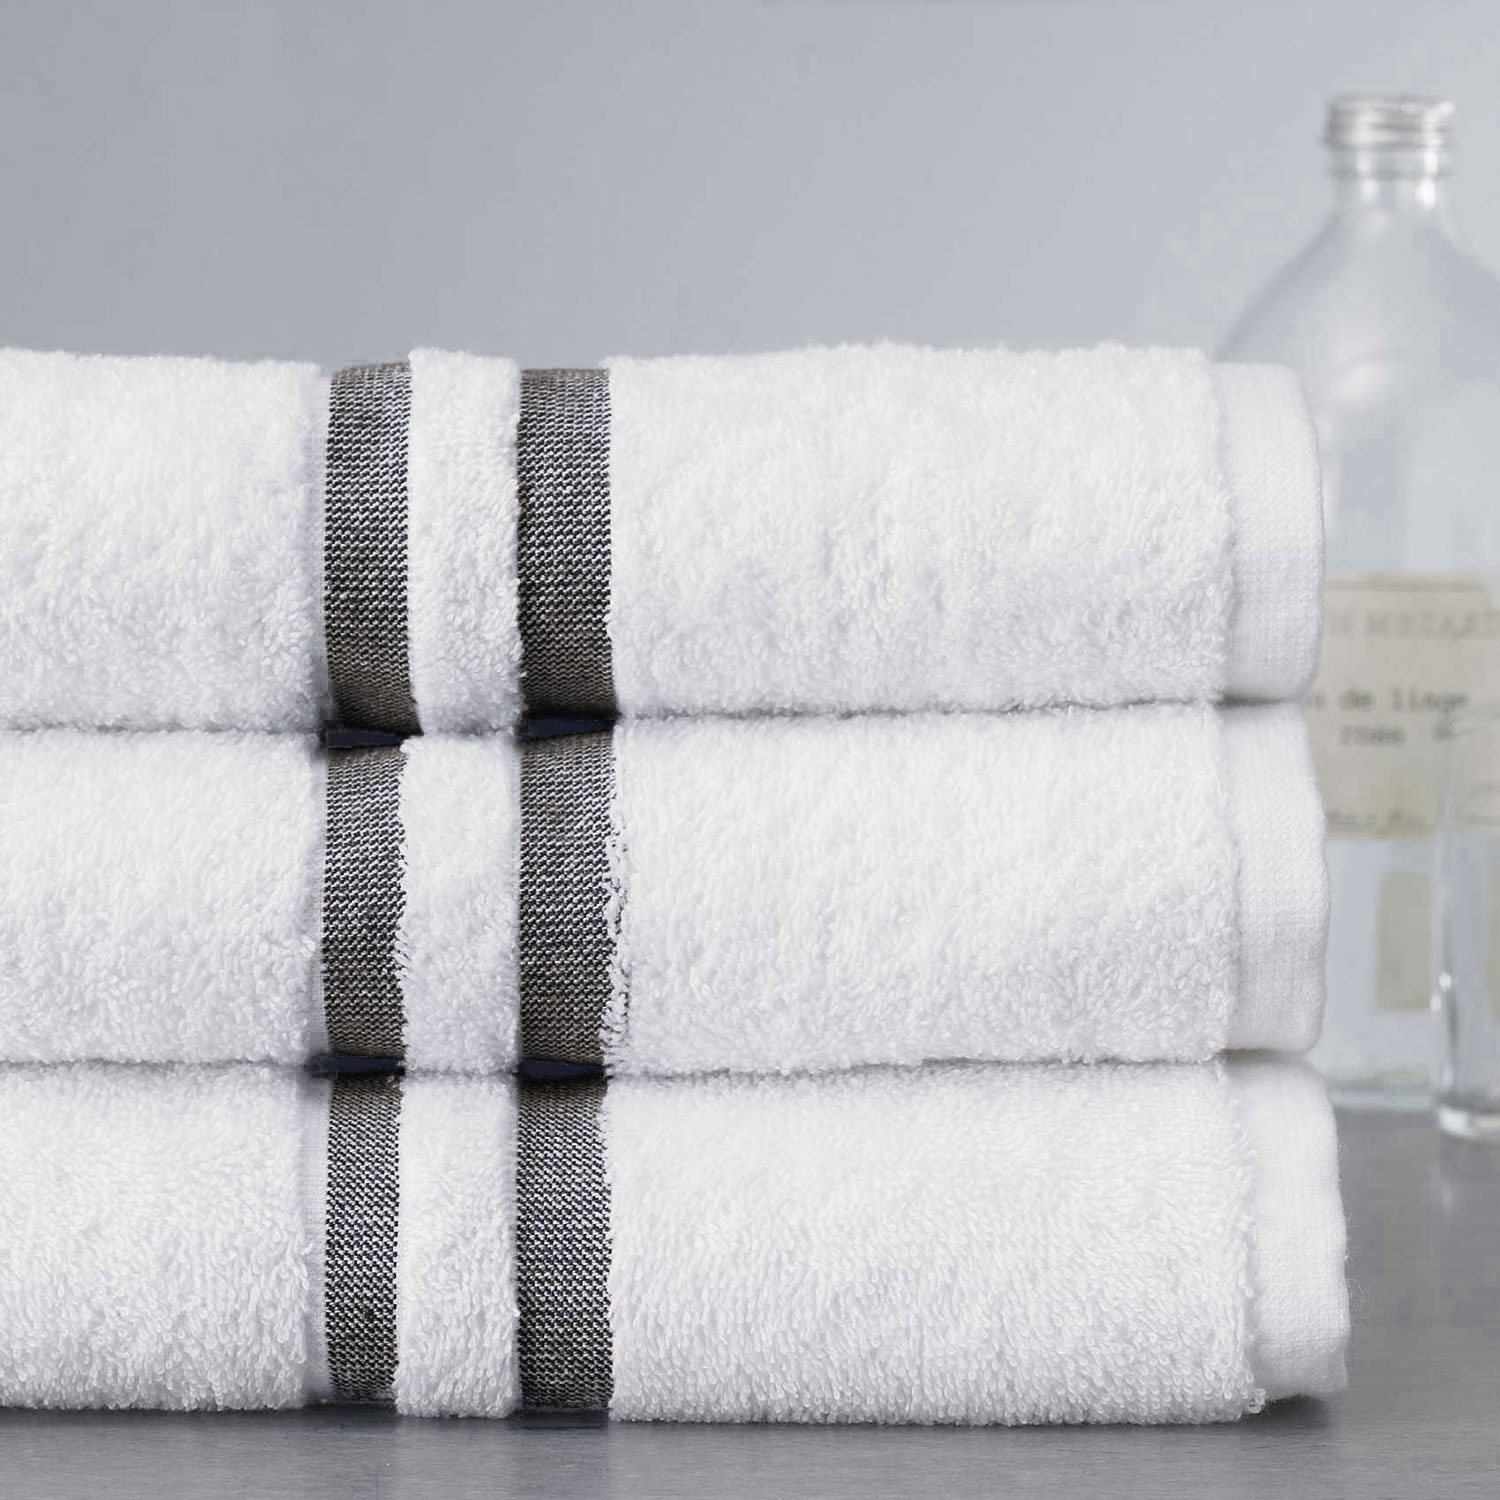 black-bath-towel_1.jpg